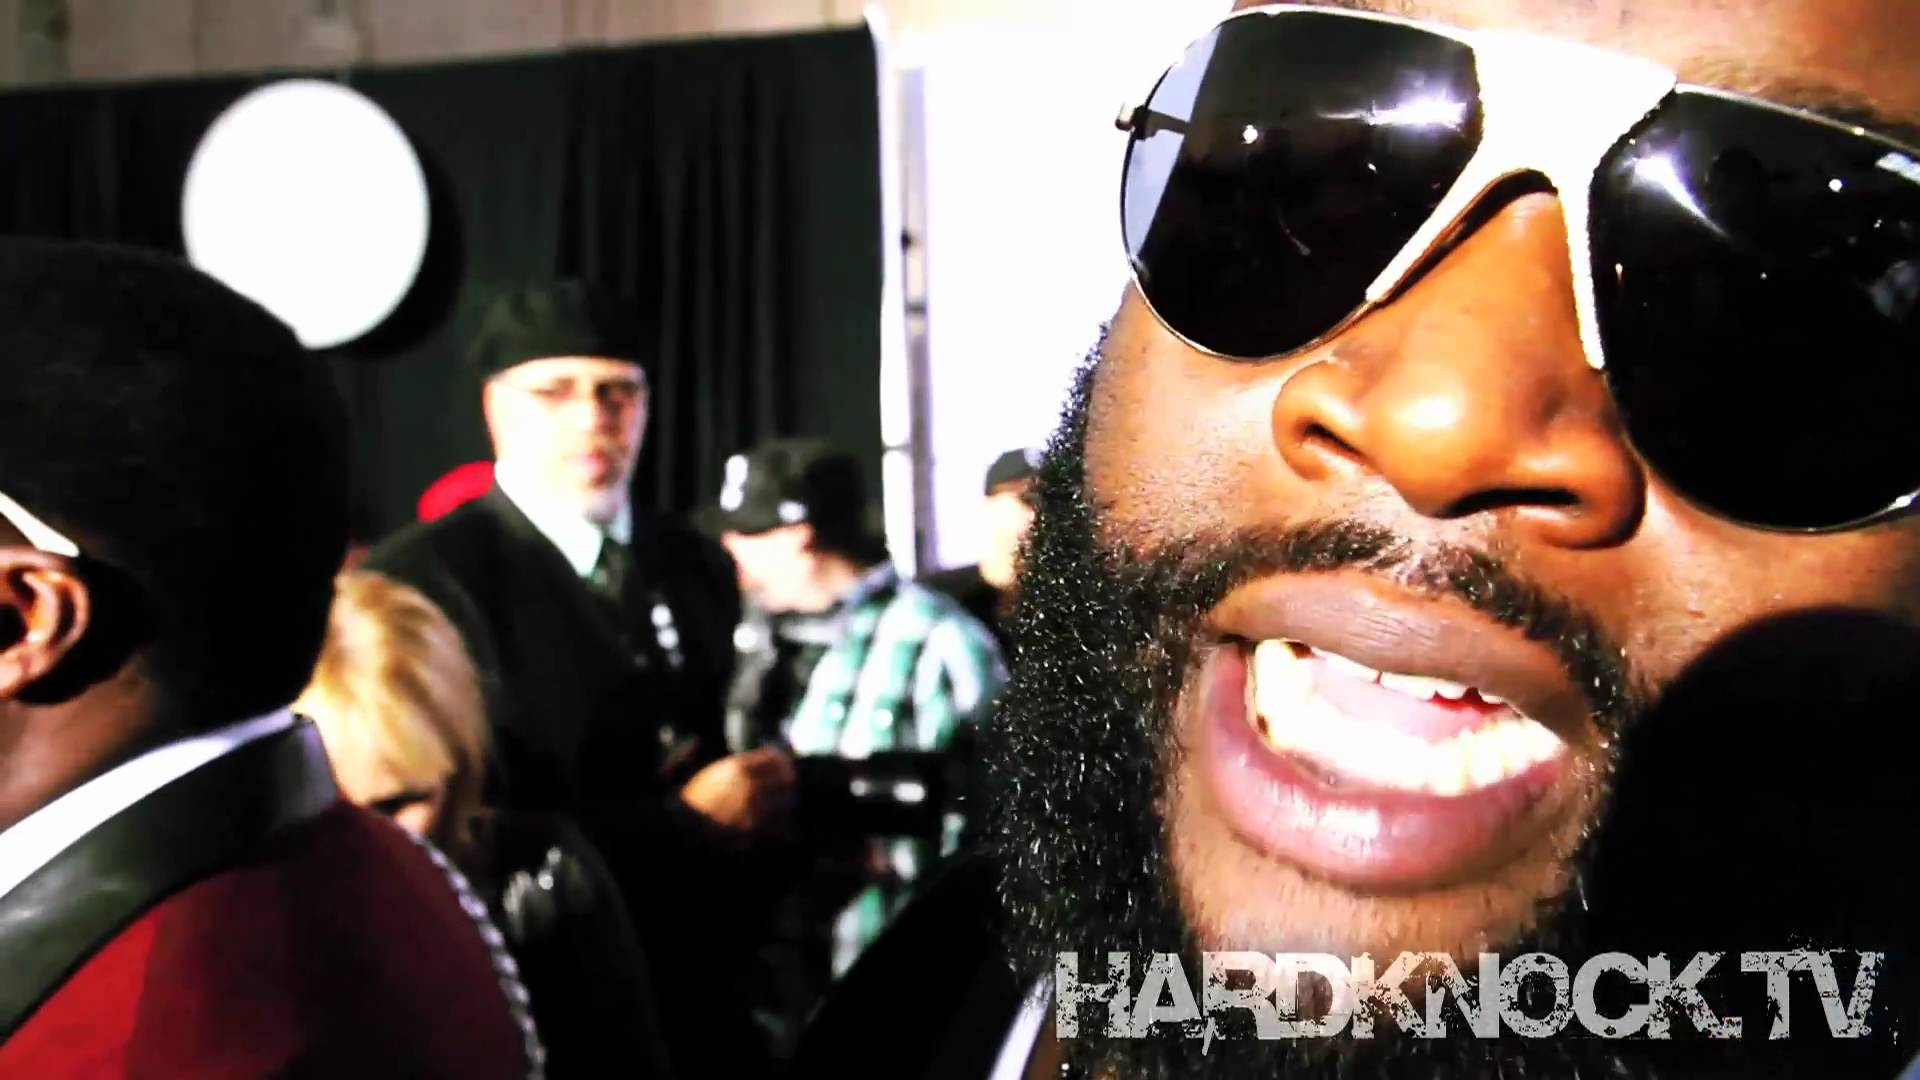 Rick Ross talks Baby, Lil Wayne and Idolizing Bid Daddy Kane